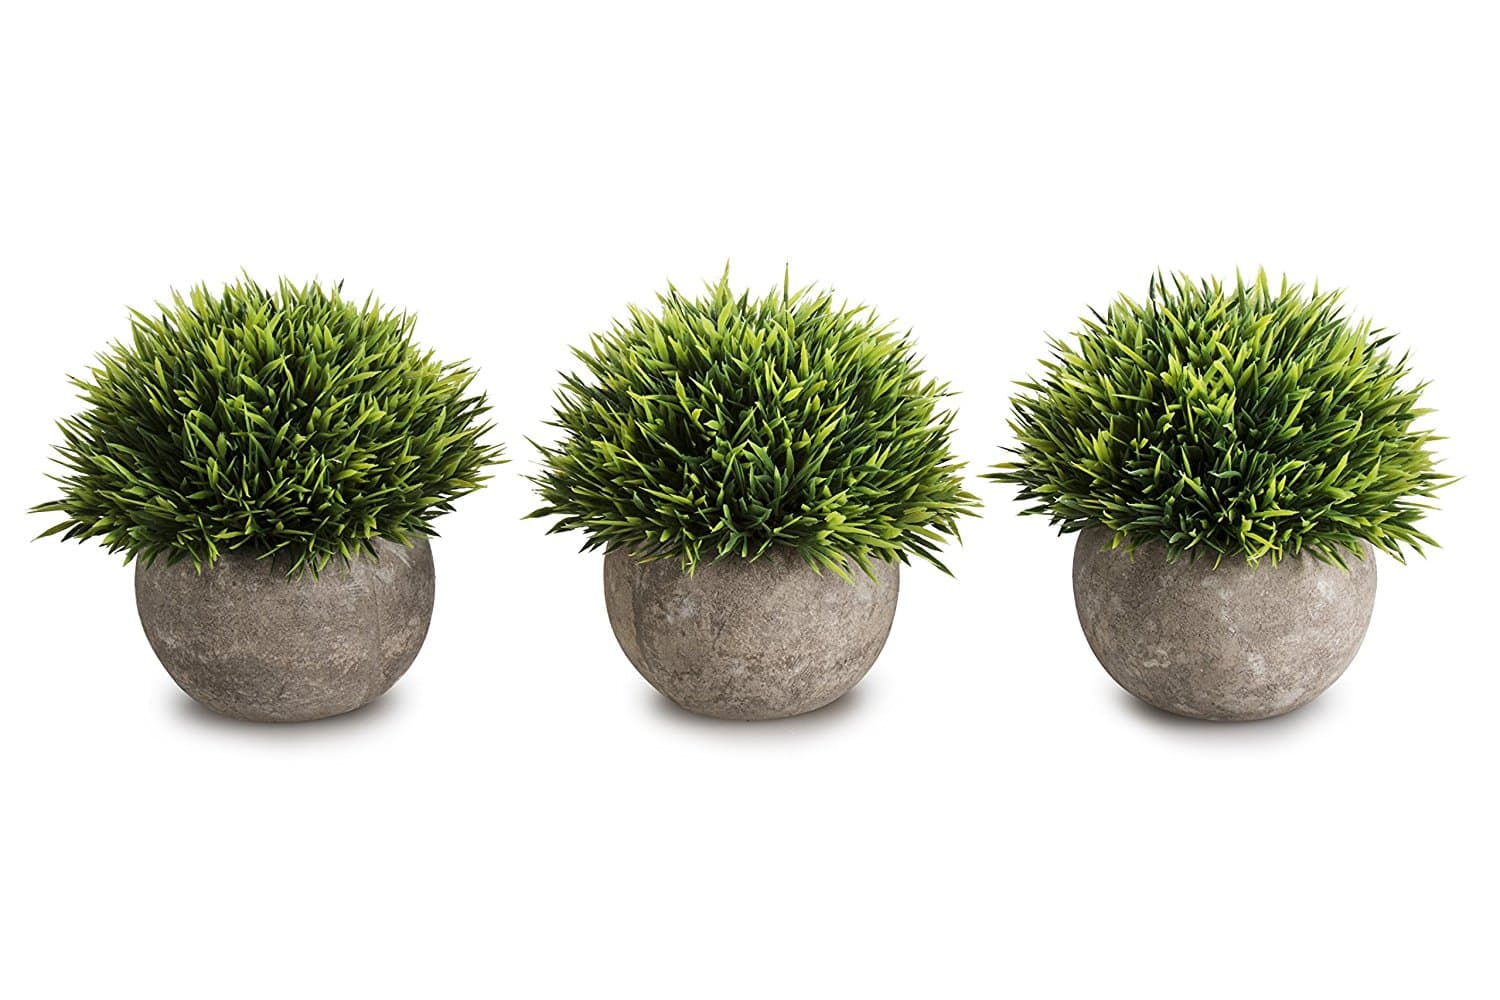 Mini Artificial Plants Plastic Fake Green Grass Topiary Shrubs With Gray Pot For Home Décor – Set of 3 - $15.99 AC